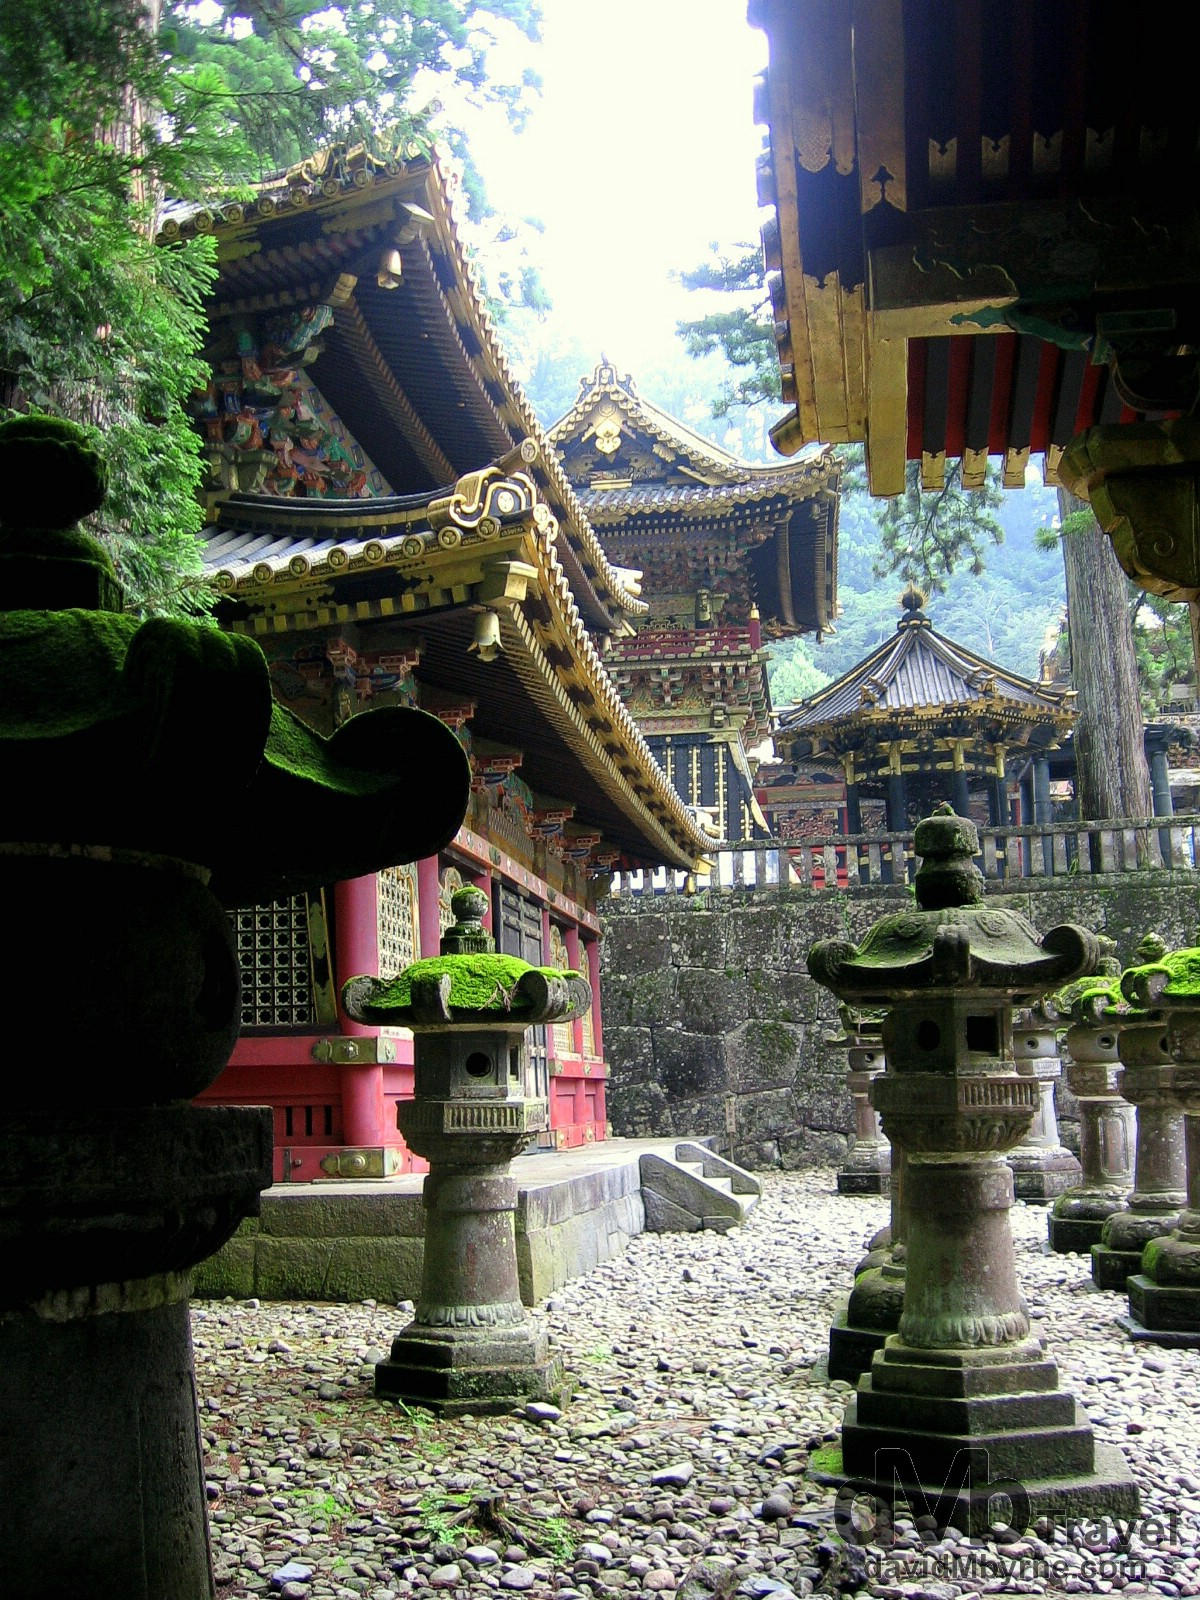 A section of the Tosho-gu Temple in Nikko, Tochigi Prefecture, Japan. July 17th 2005.